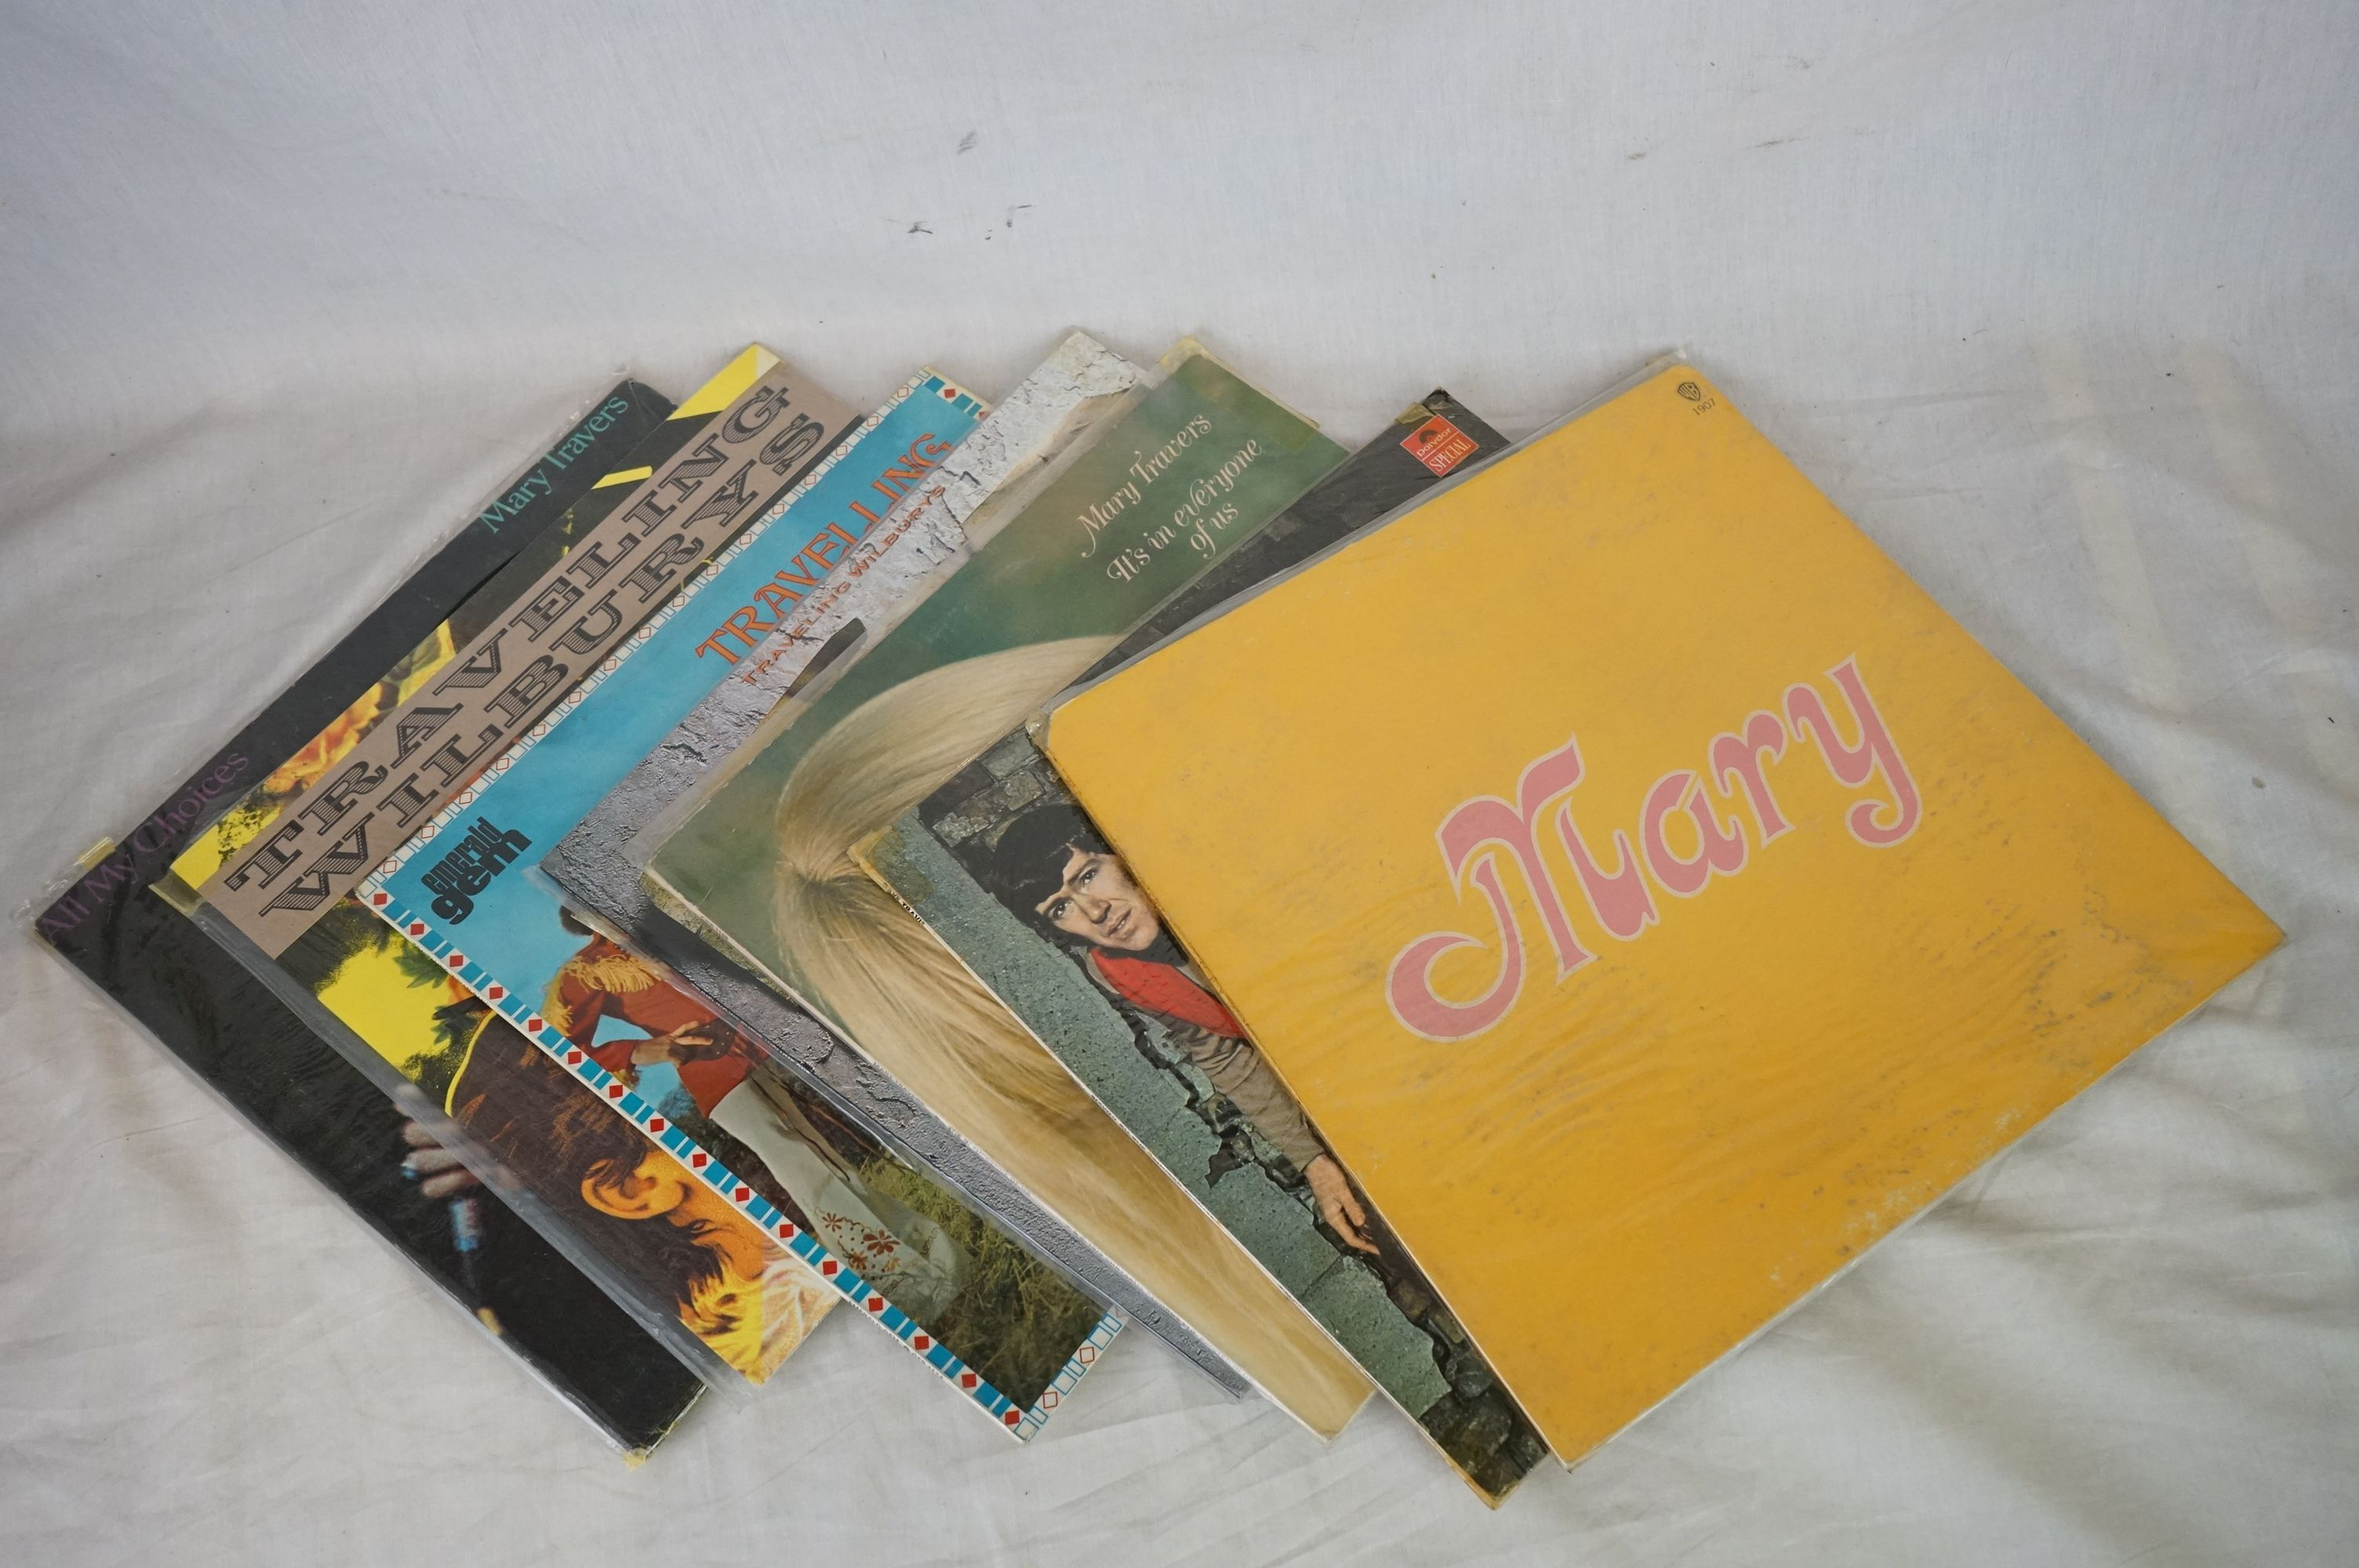 Vinyl - Over 300 LPs to include Country, MOR etc, sleeves and vinyl vg+ (three boxes) - Image 2 of 4